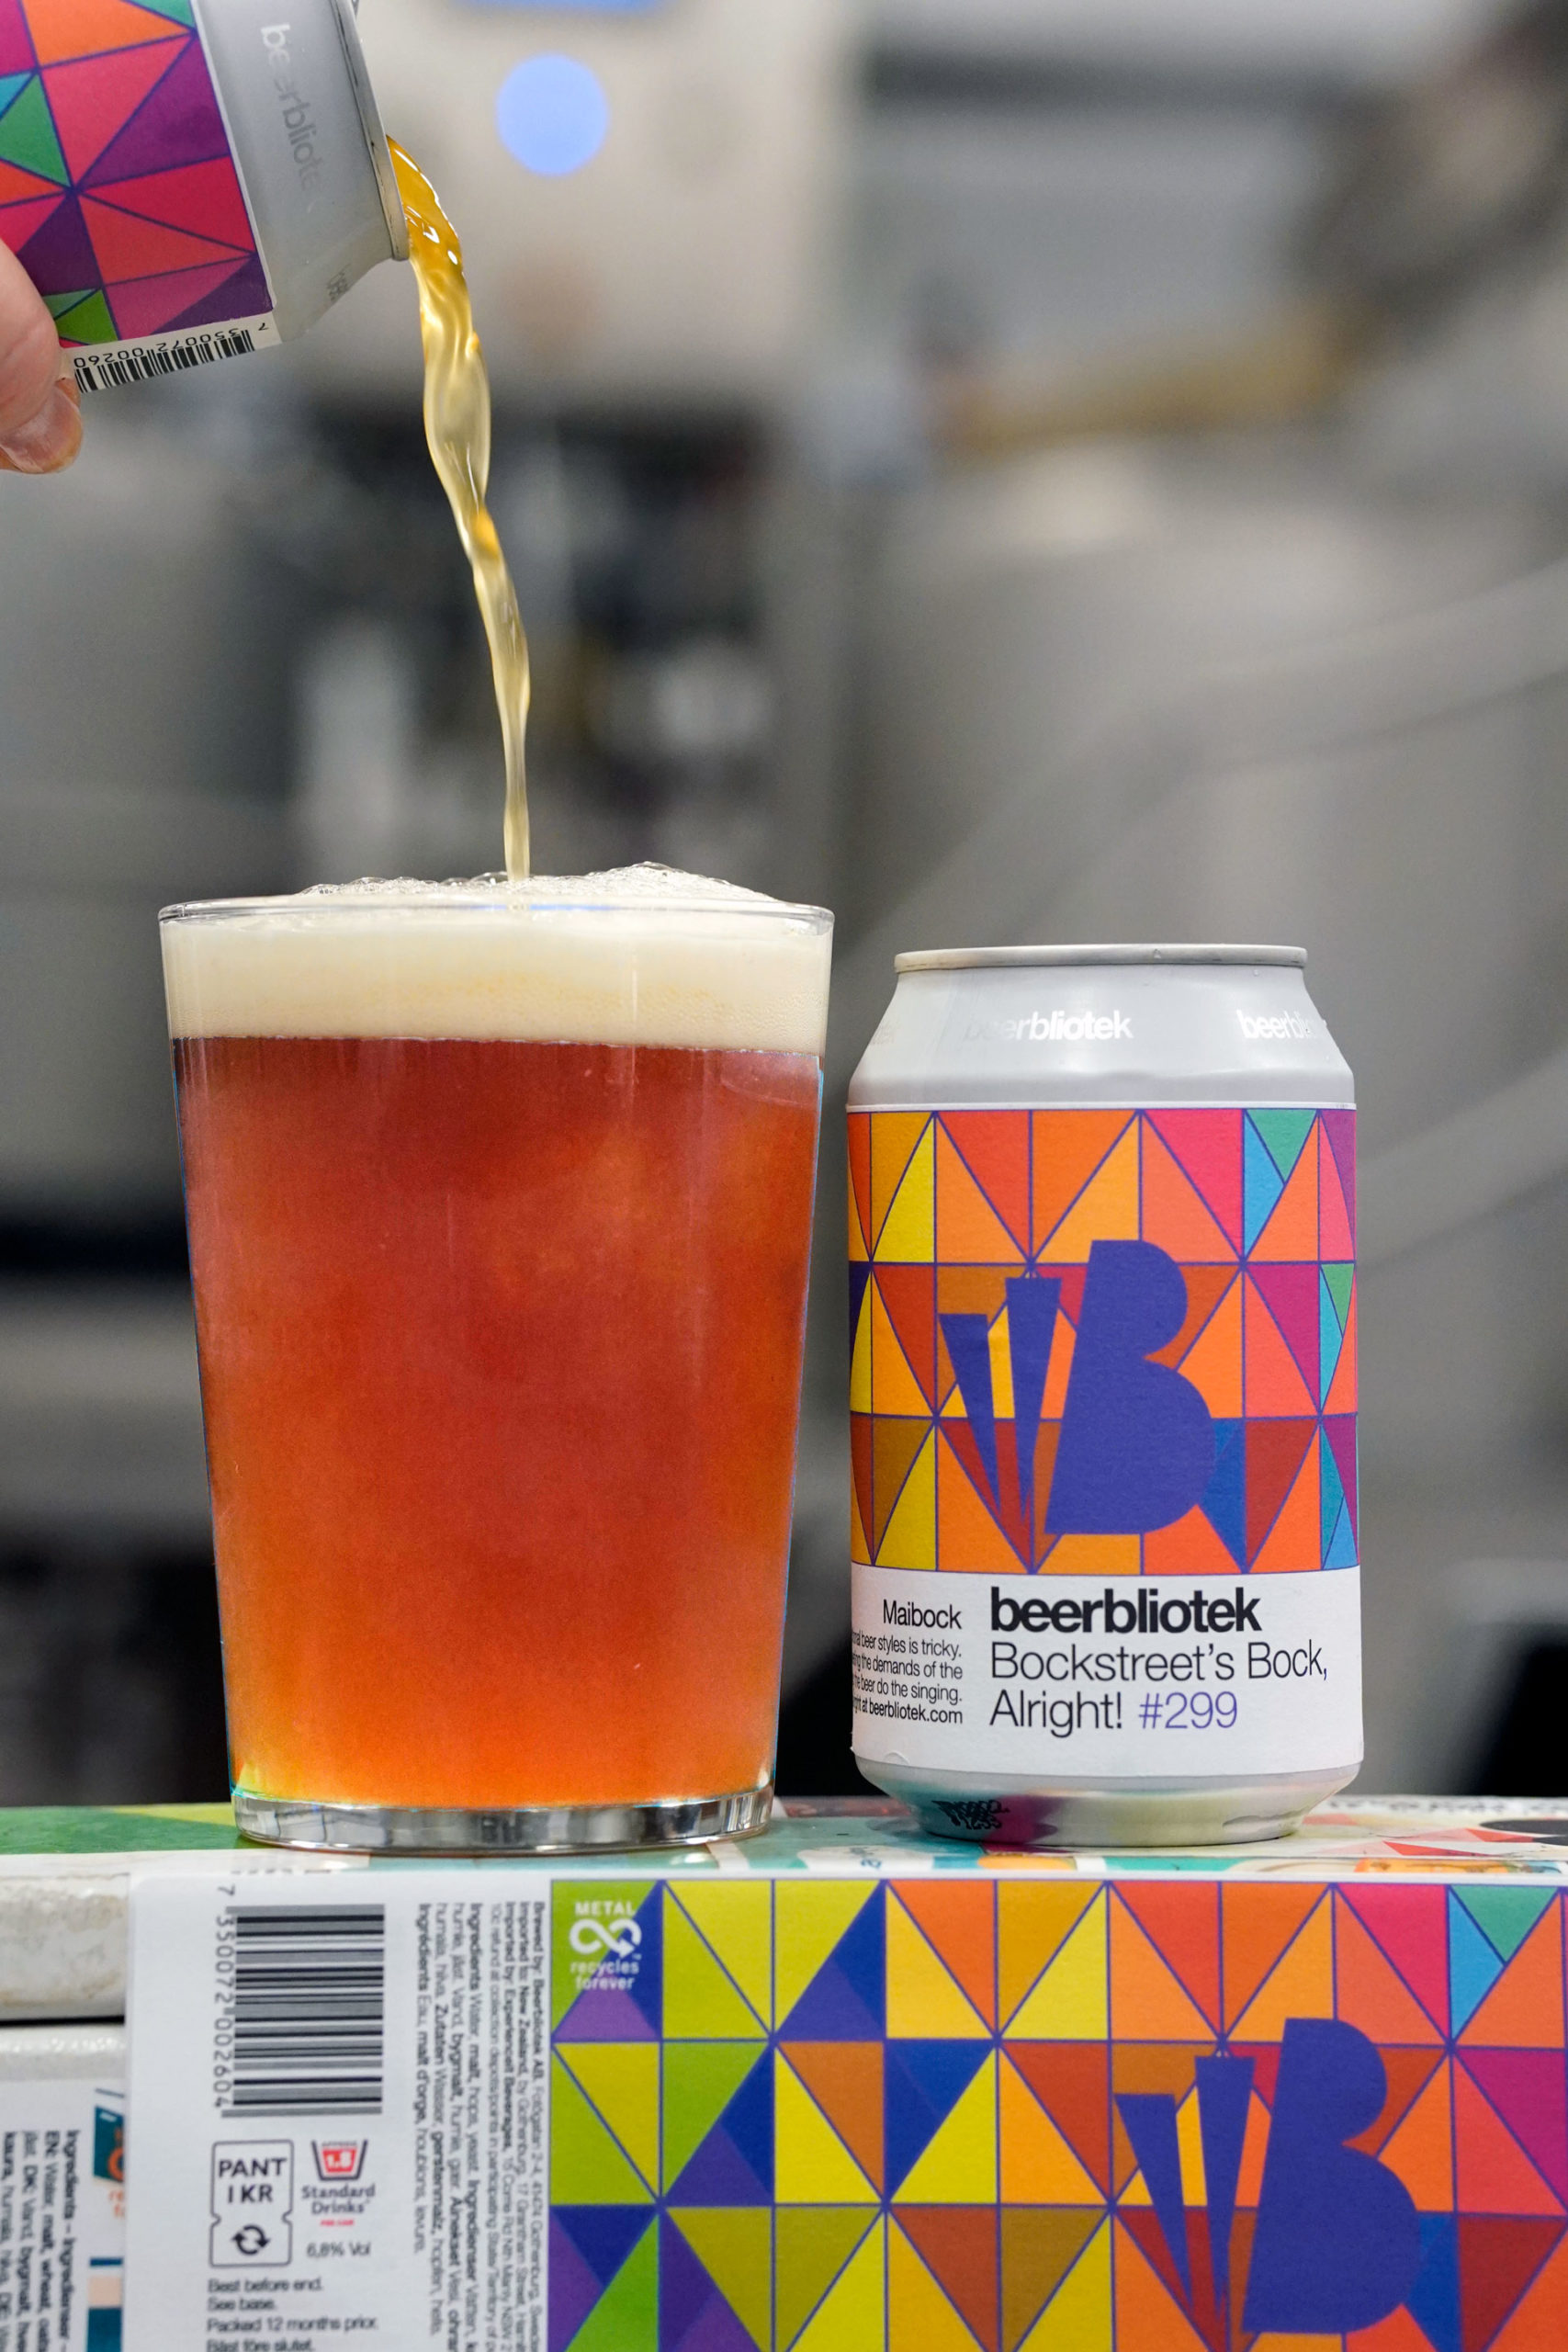 A can of Bockstreet's Bock, Alright! A Maibock, being poured into a glass, during the packaging day. This beer was brewed in Gothenburg, by Swedish Craft Brewery Beerbliotek.